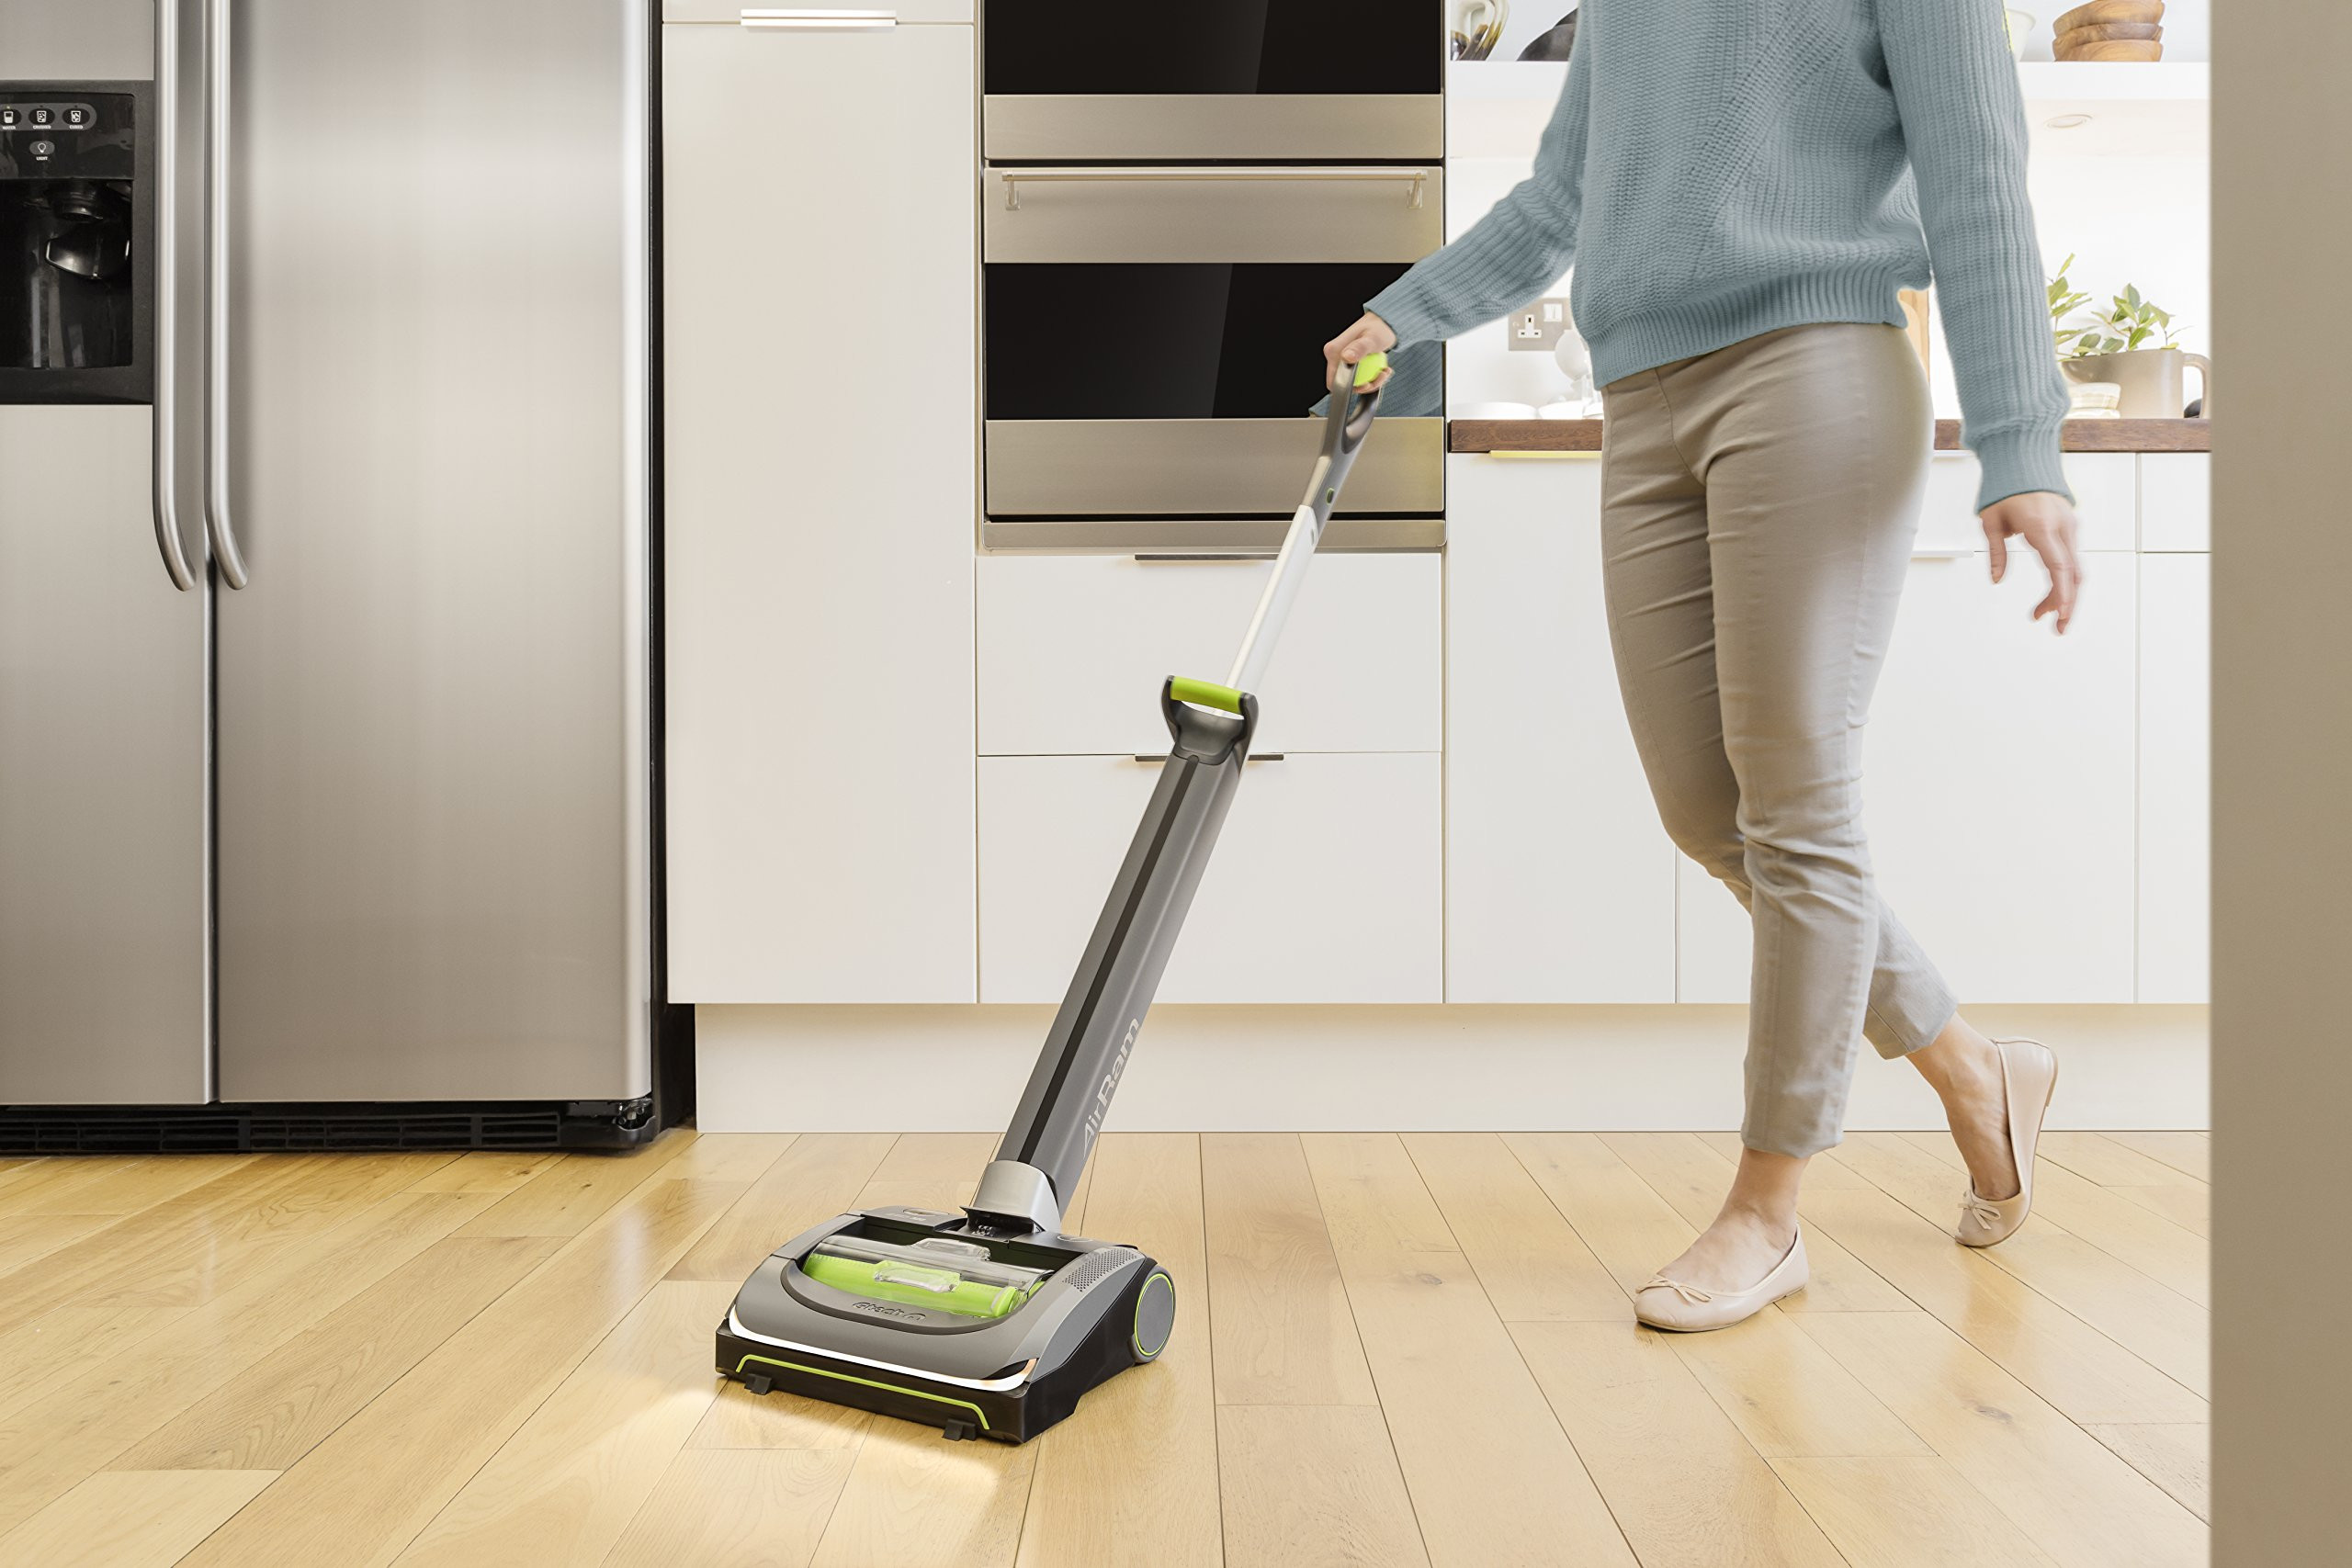 Professional Hardwood Floor Cleaning Machines Of Vacuum and Floor Care Shop Amazon Uk In Vacuum Cleaners